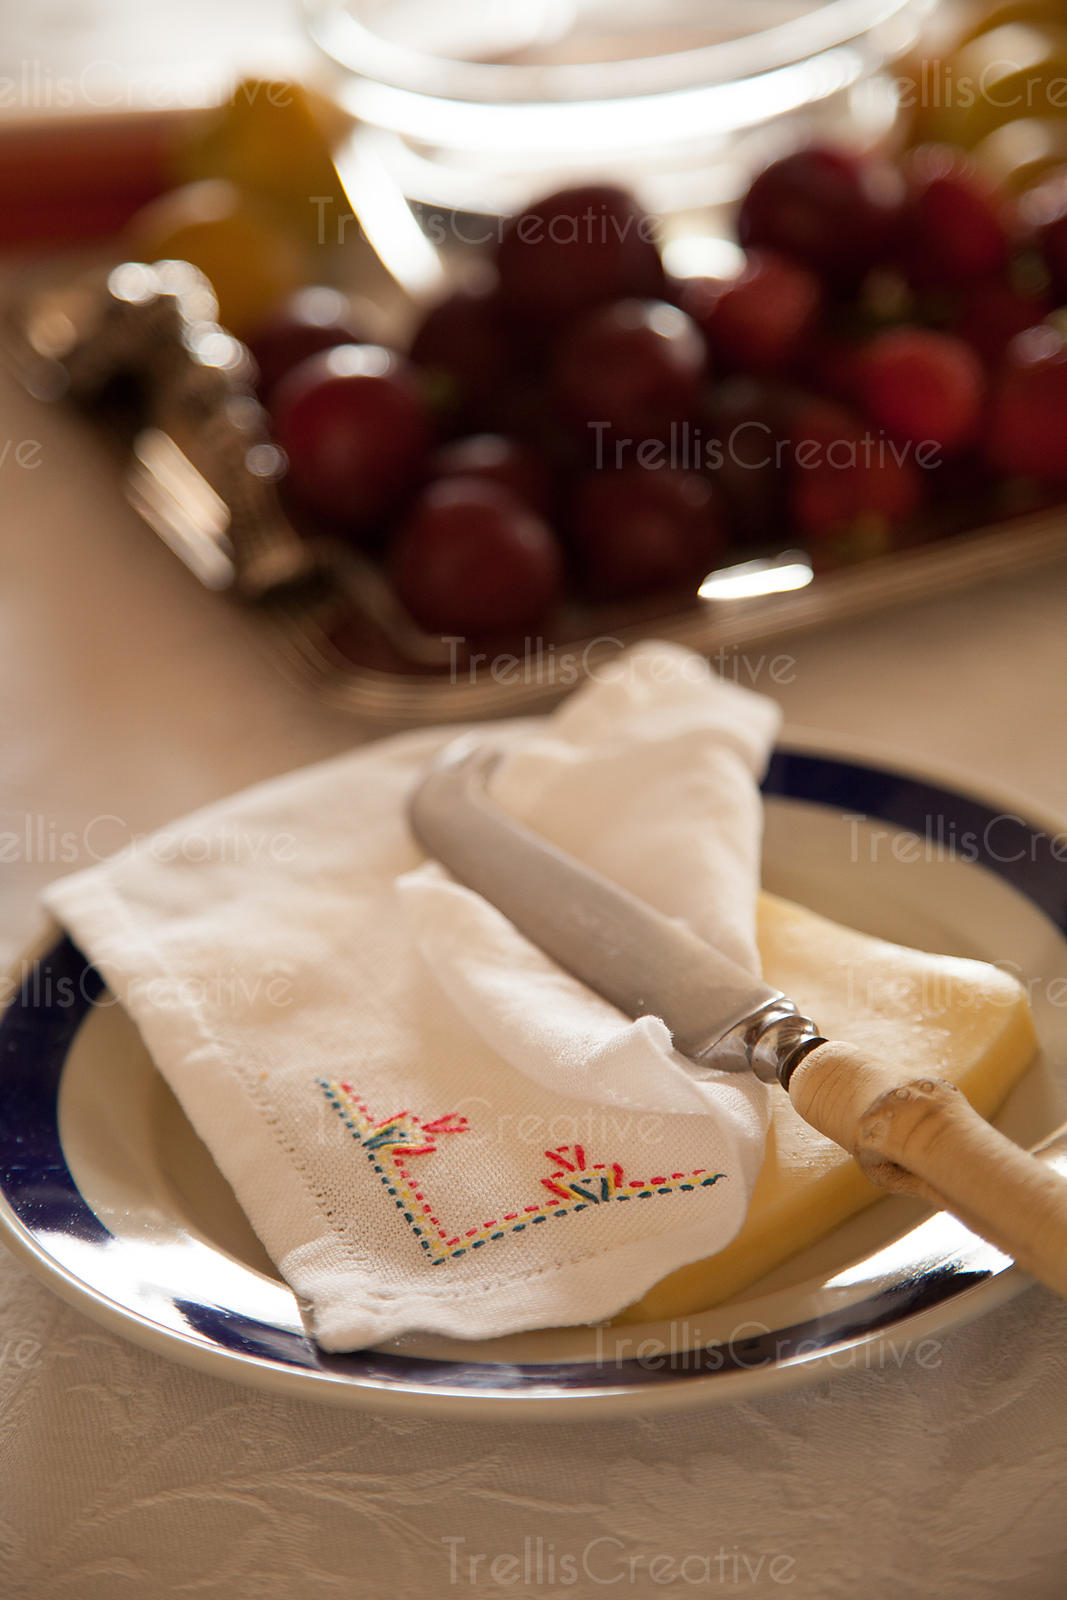 Morning light shines onto a table with cheese slices and fruit on it